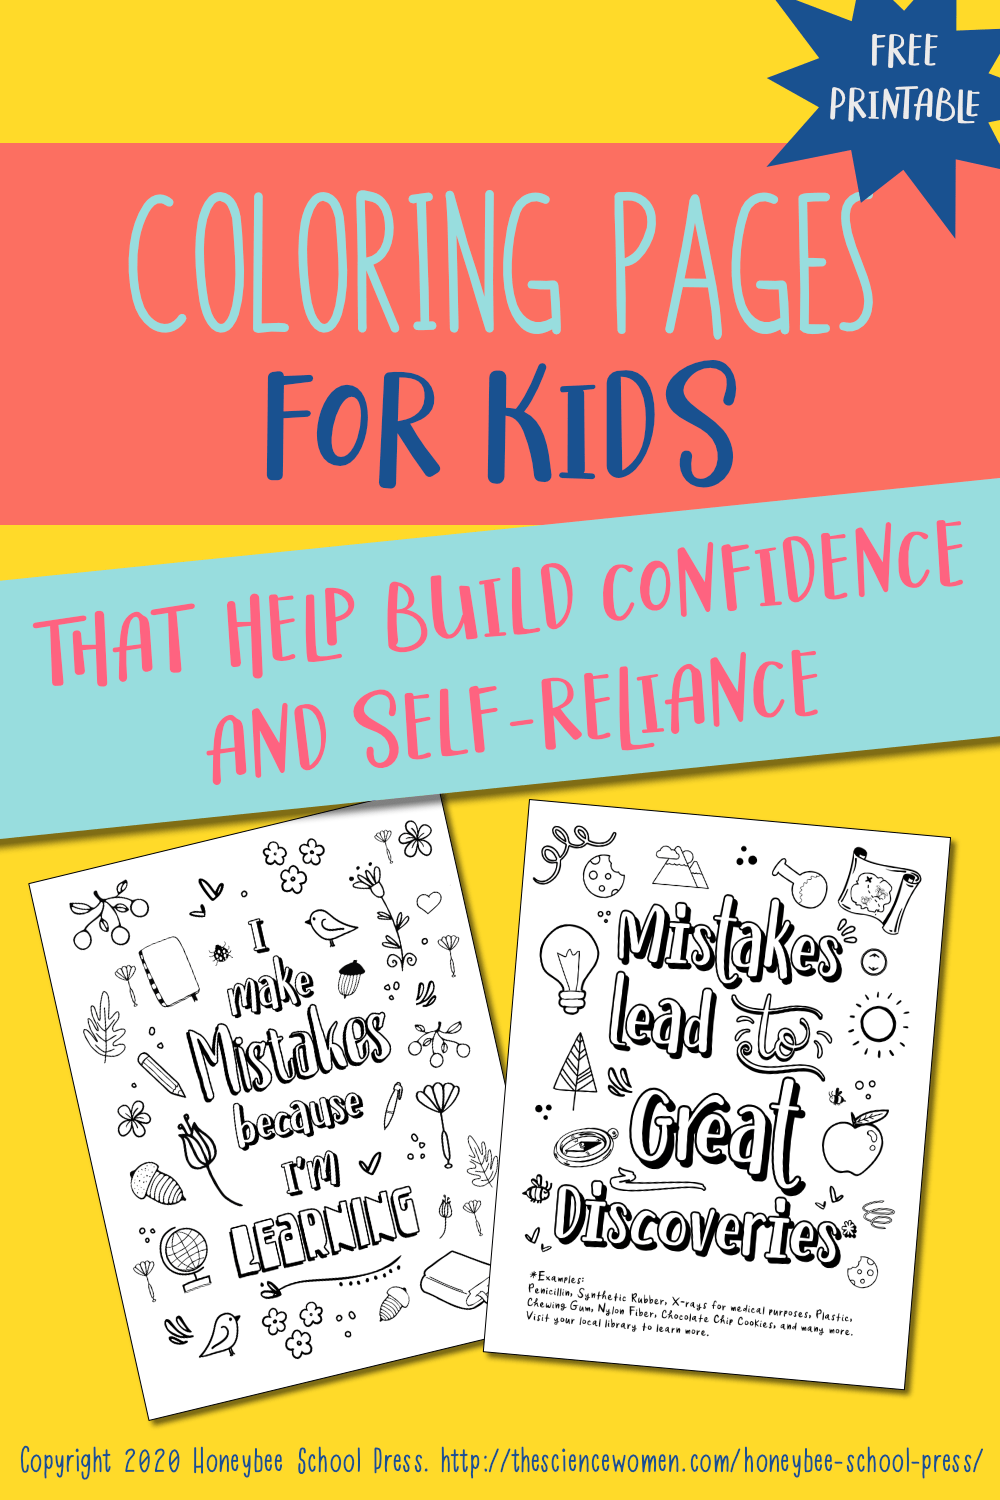 Mistakes Are My Superpower Free Coloring Pages Printable The Science Women Self Esteem Building Activities Life Skills For Children Printables Free Kids